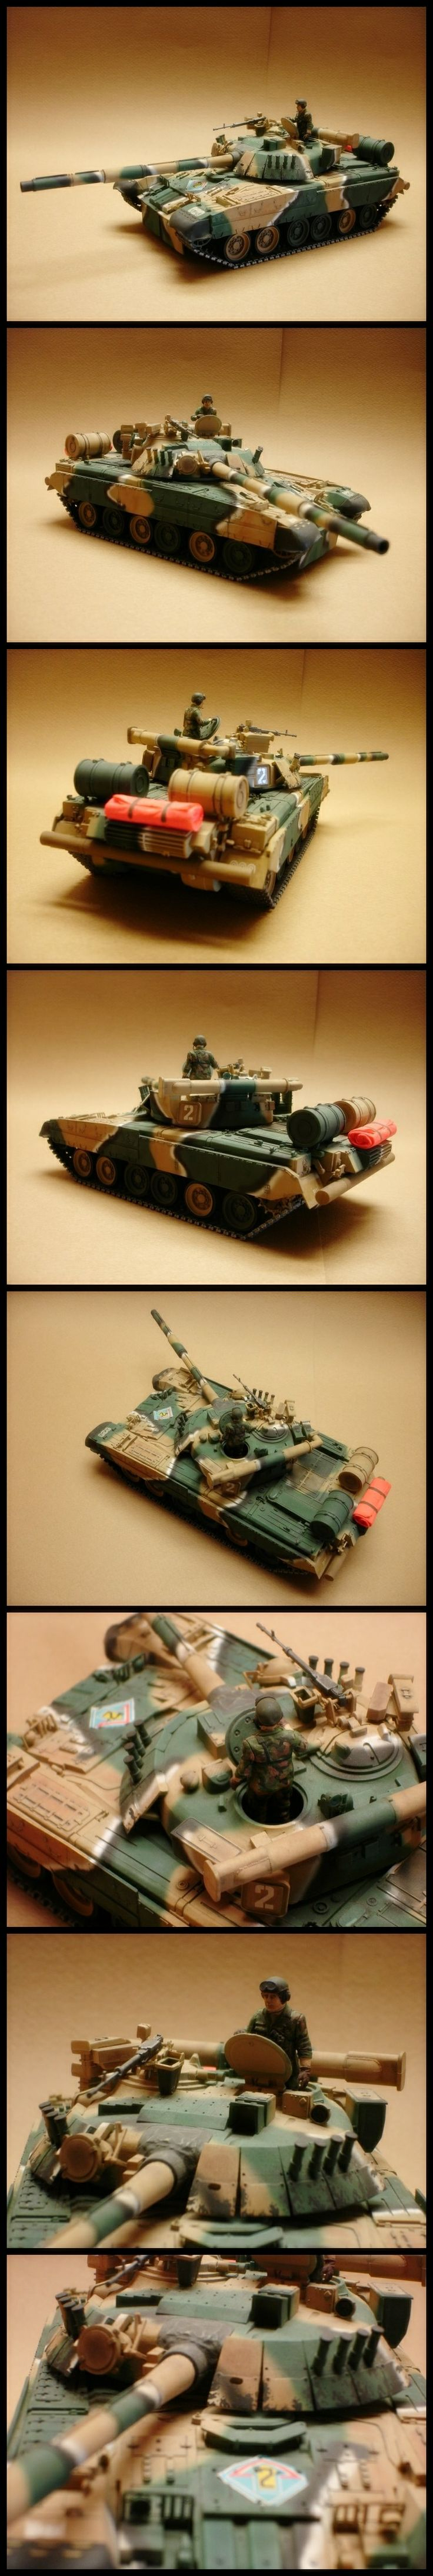 1/35 T-80U | The Plastic Figure World Amazing collection!